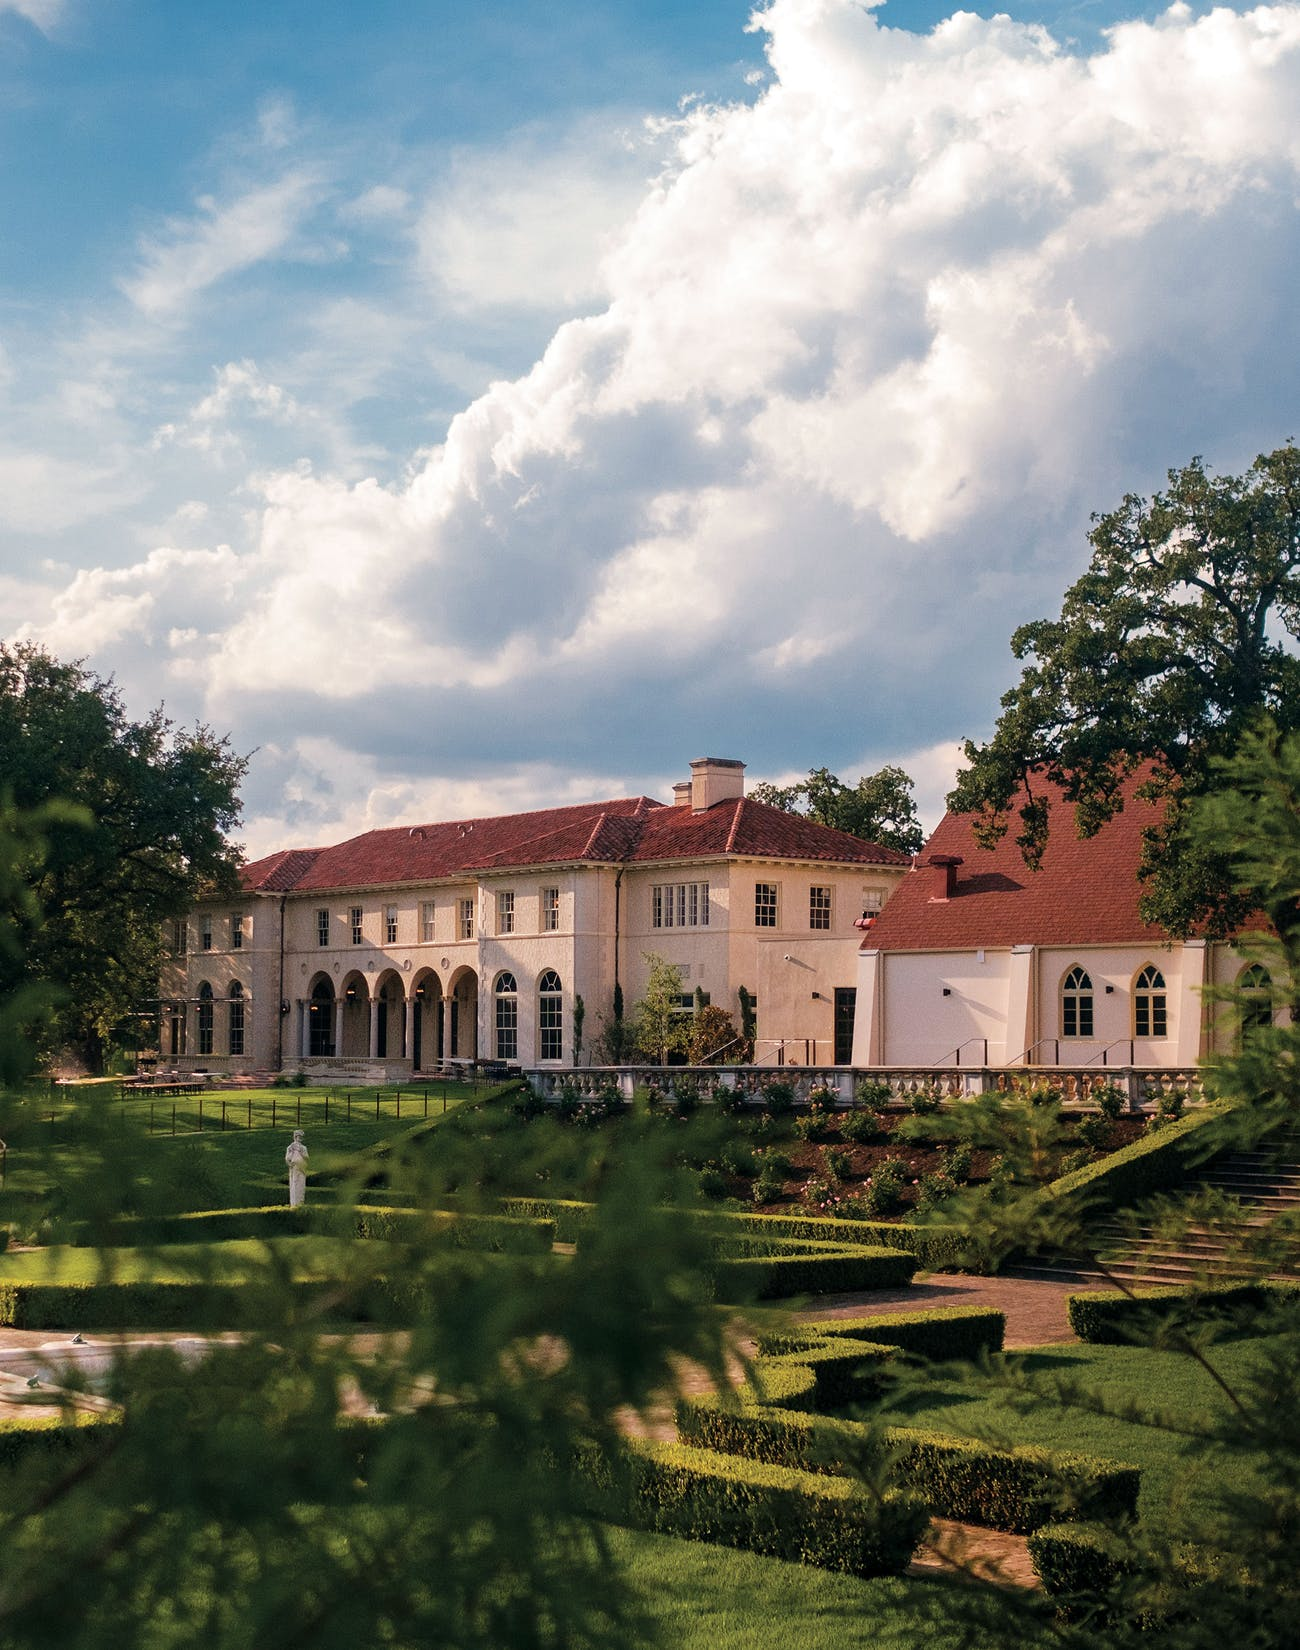 The Commodore Perry mansion, built in 1928 near Austin's Hyde Park neighborhood, is listed on the National Register of Historic Places. For its new chapter as a luxurious place to stay—Auberge Resorts Collection's first urban retreat—the dreamy grounds have been updated with fresh landscaping, a new pool, and the addition of a three-story Inn.